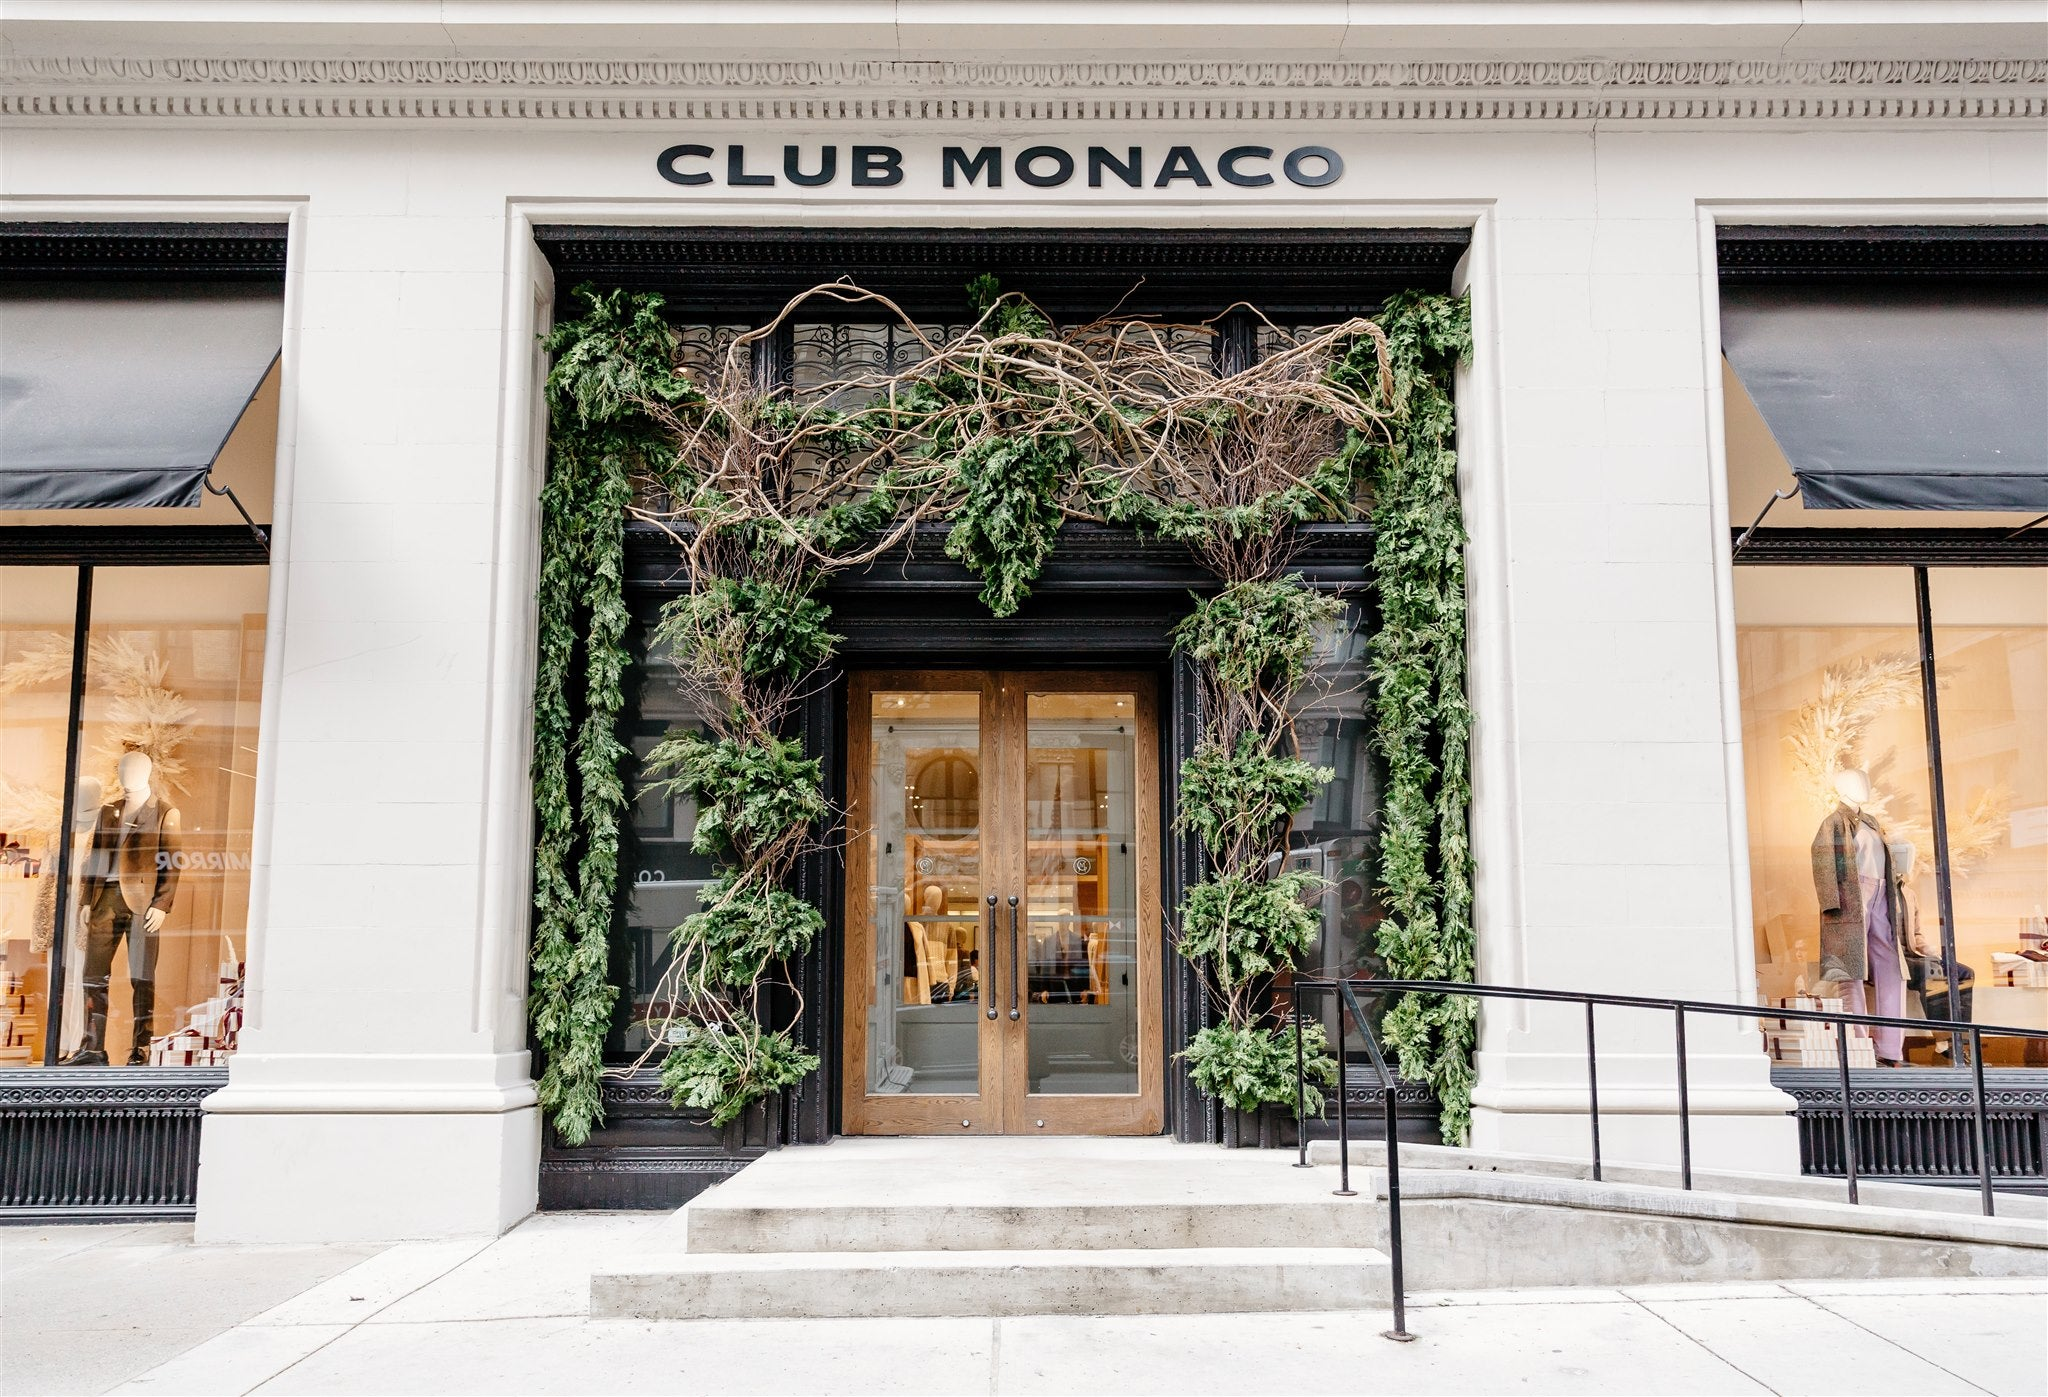 Evergreen exterior treatment for Holiday at Club Monaco 5th Avenue Flagship - Delaine Dacko - Brave Floral